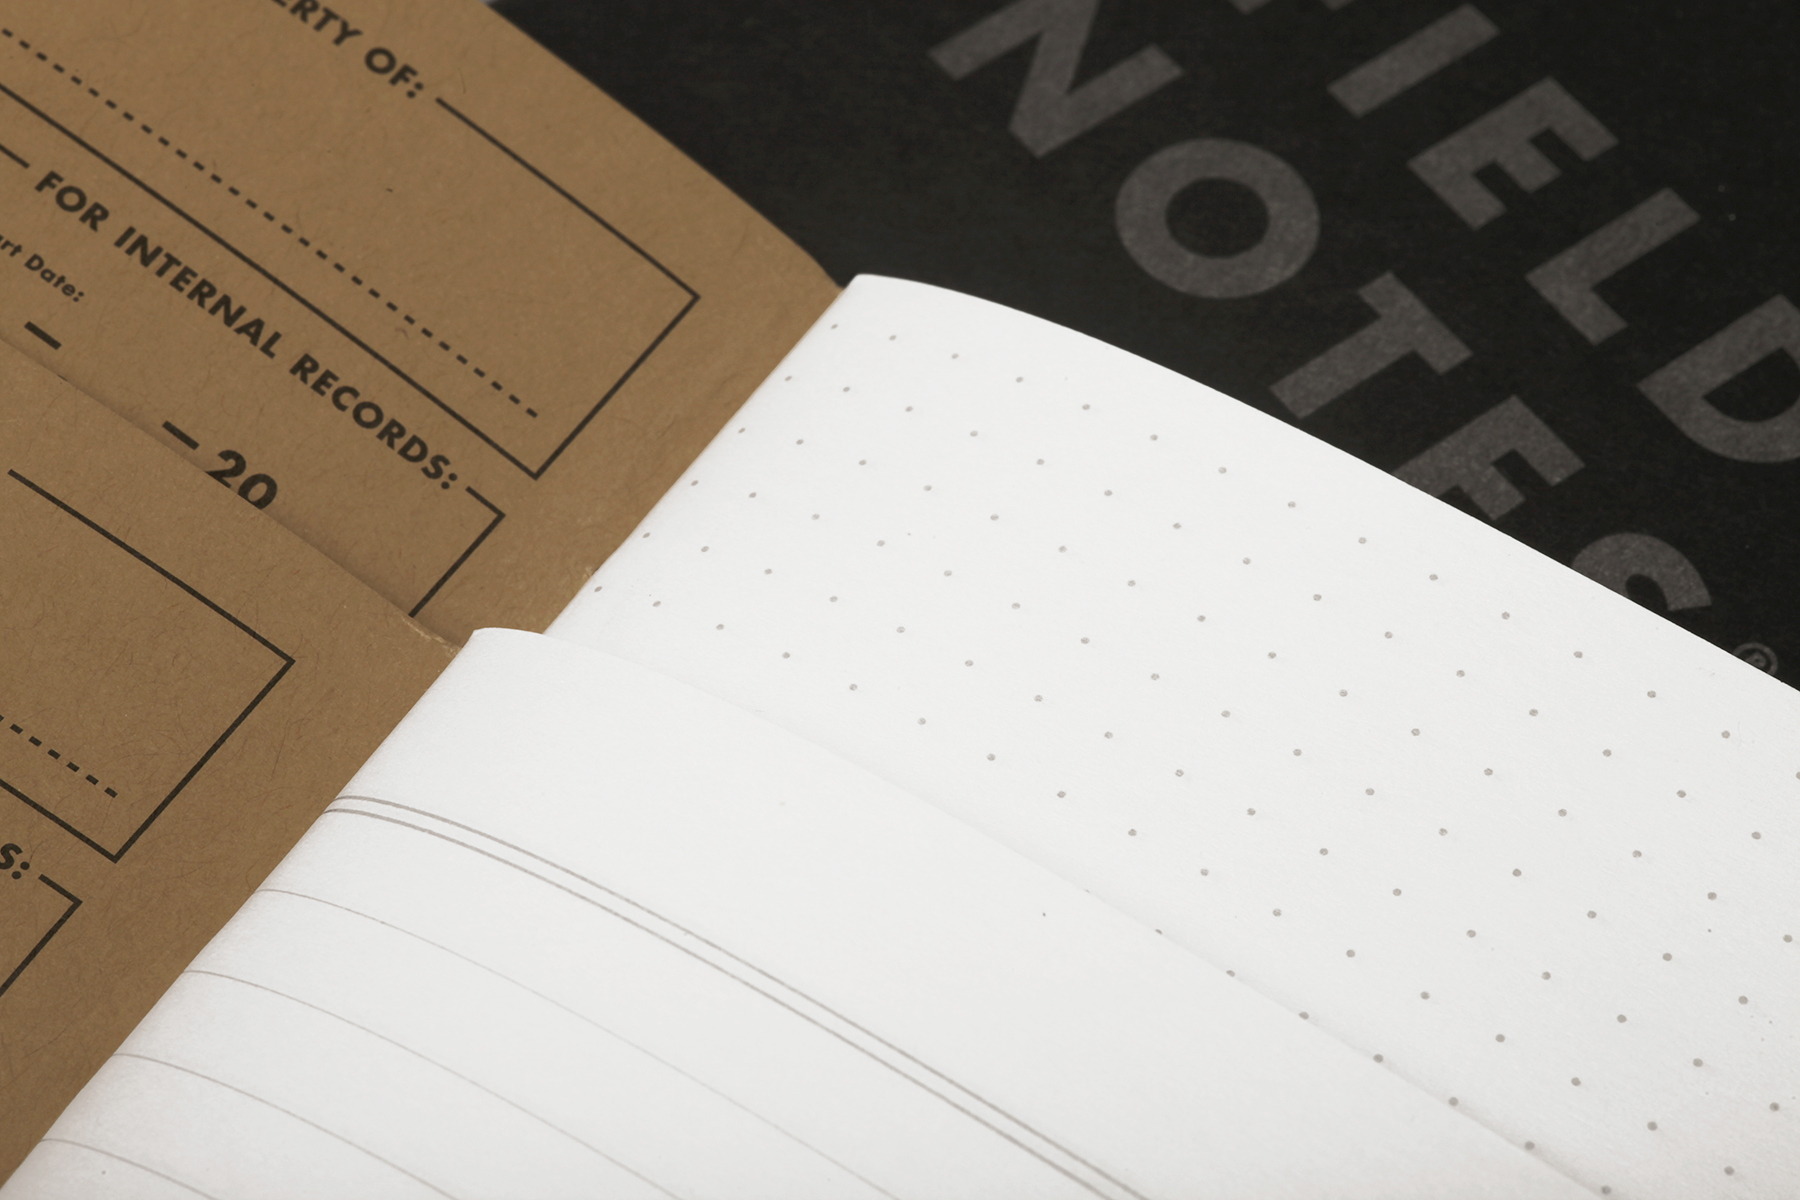 Pitch Black von Field Notes, innen, Punktraster, Linien, Notizhefte,